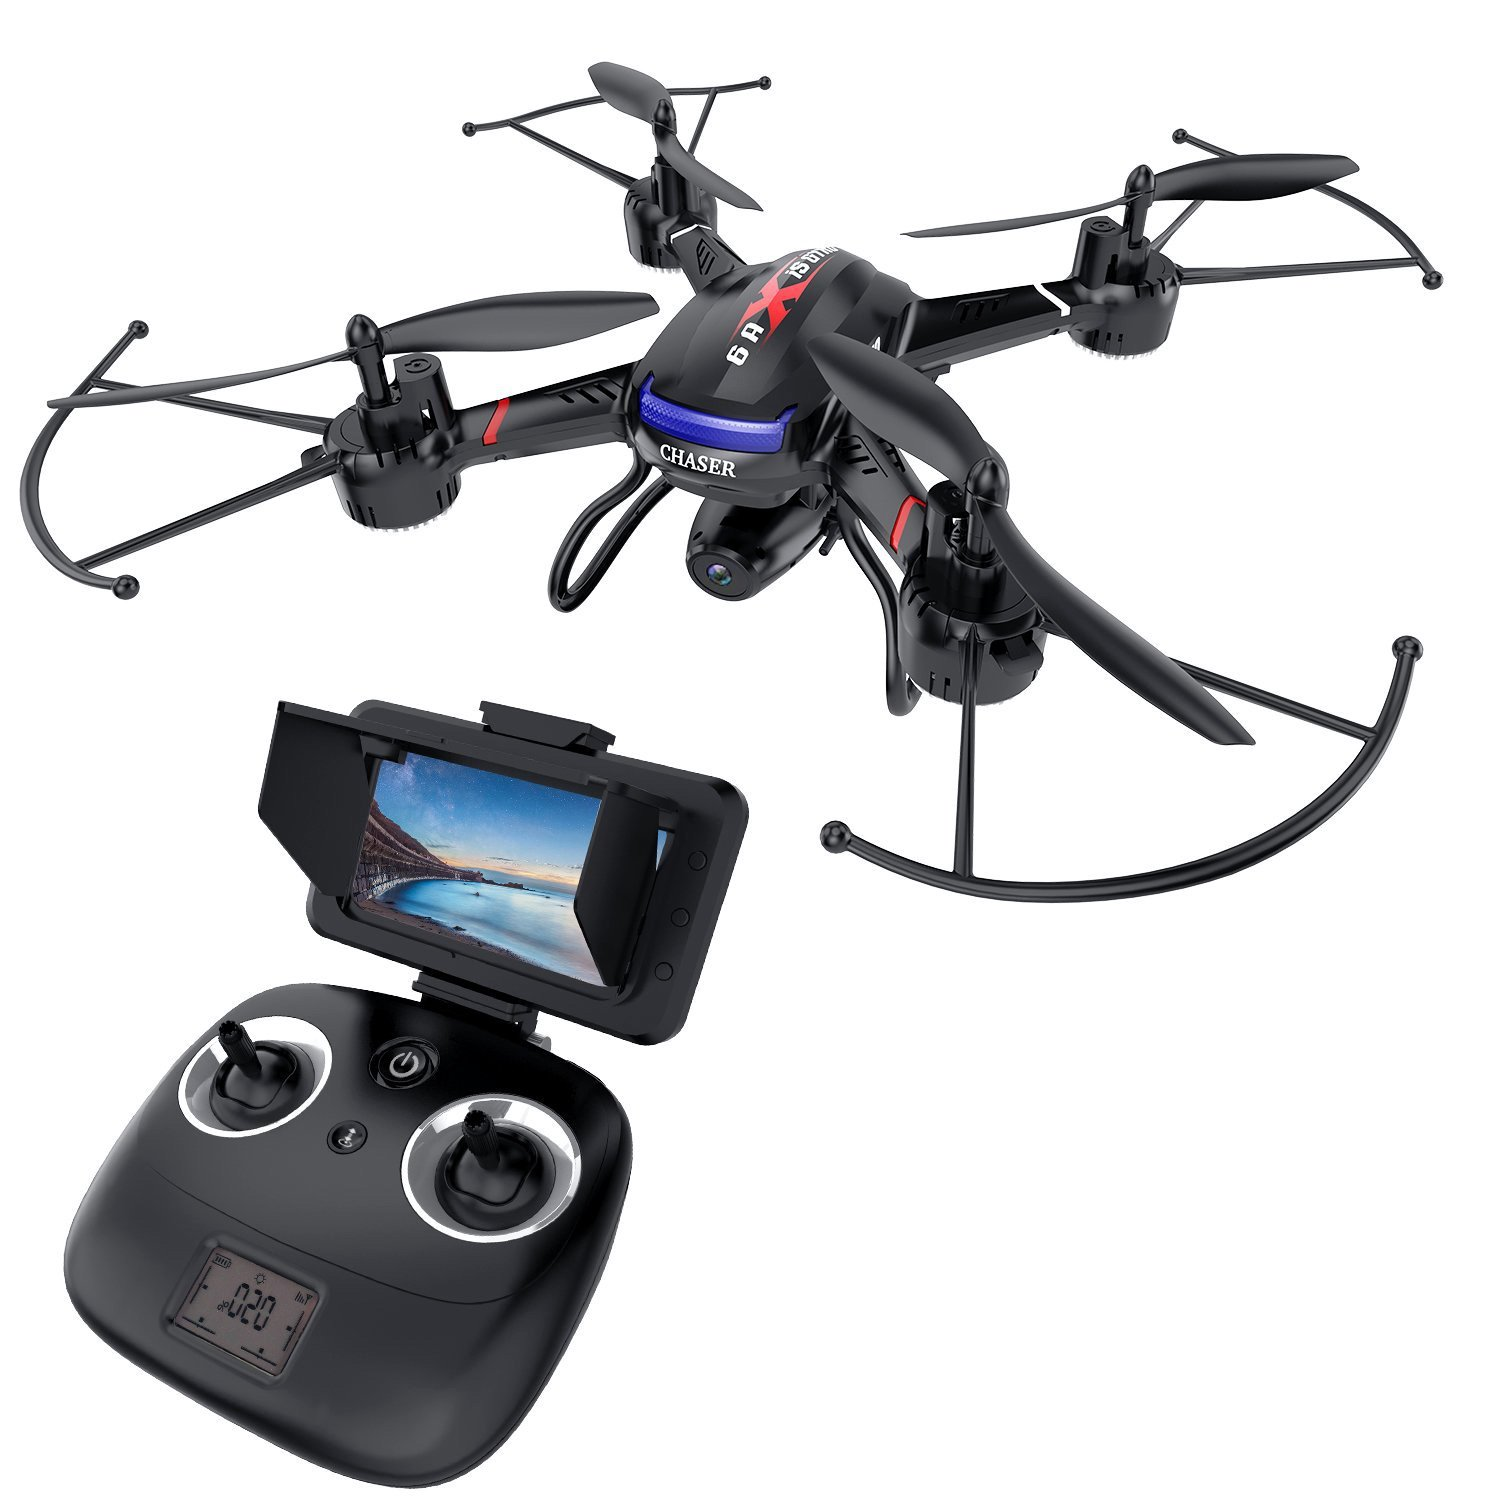 CDM product Holy Stone F181G FPV RC Drone with HD Camera 720P FOV 120° Live Video with LCD Screen for Adults Kids Beginners 5.8G Image Transmission Quadcopter RTF Toys with Altitude Hold Emergency Stop One Key Take-Off Modular Battery big image